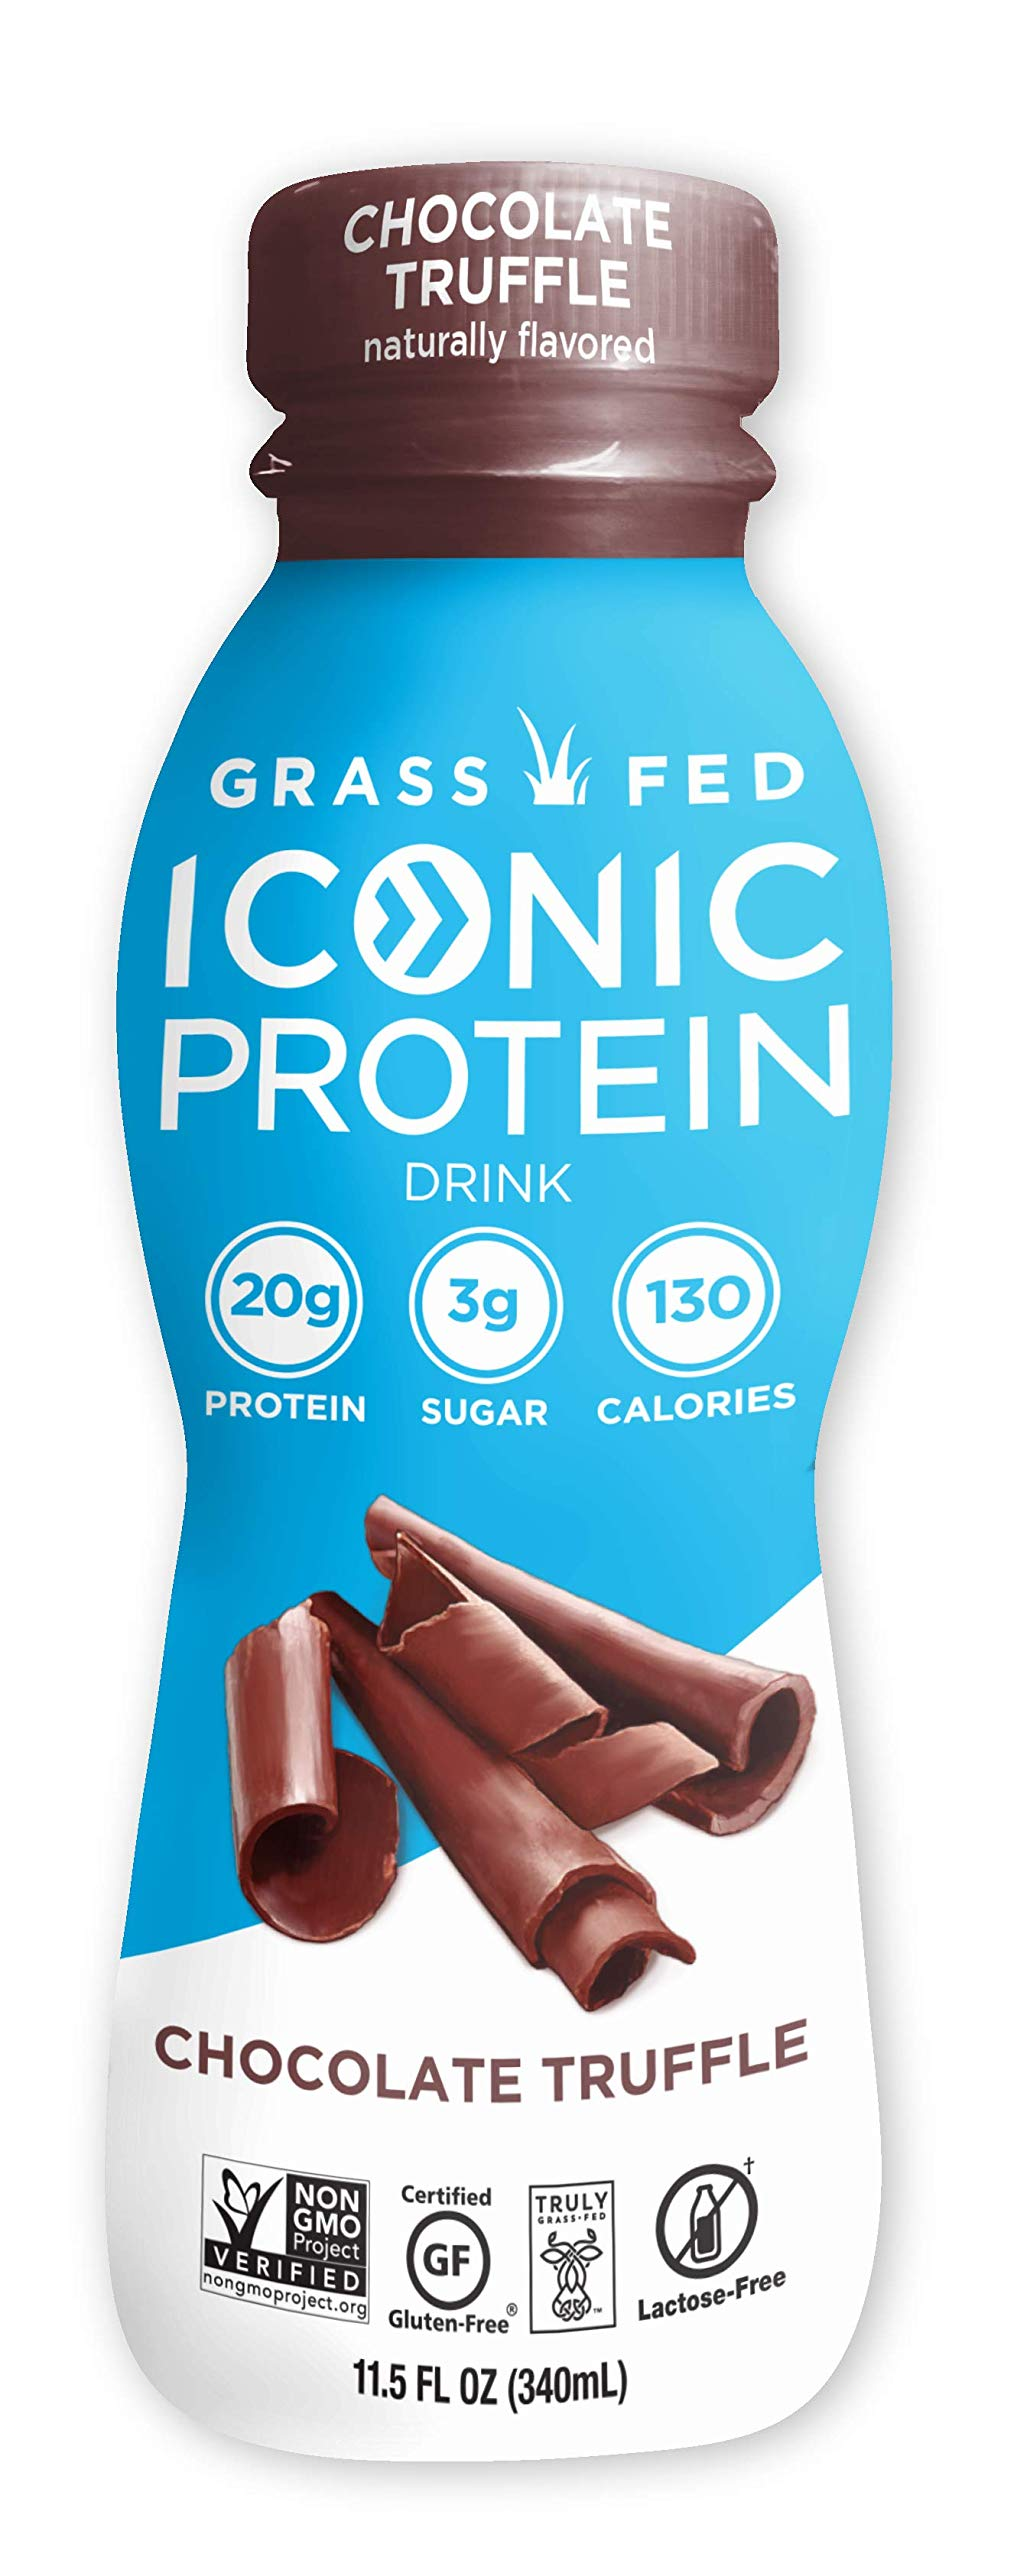 Iconic Protein Drinks, Chocolate Truffle (12 Pack) | Low Carb Protein Shakes | Grass Fed, Lactose Free, Gluten Free, Non-GMO, Kosher | High Protein Drink | Keto Friendly by ICONIC